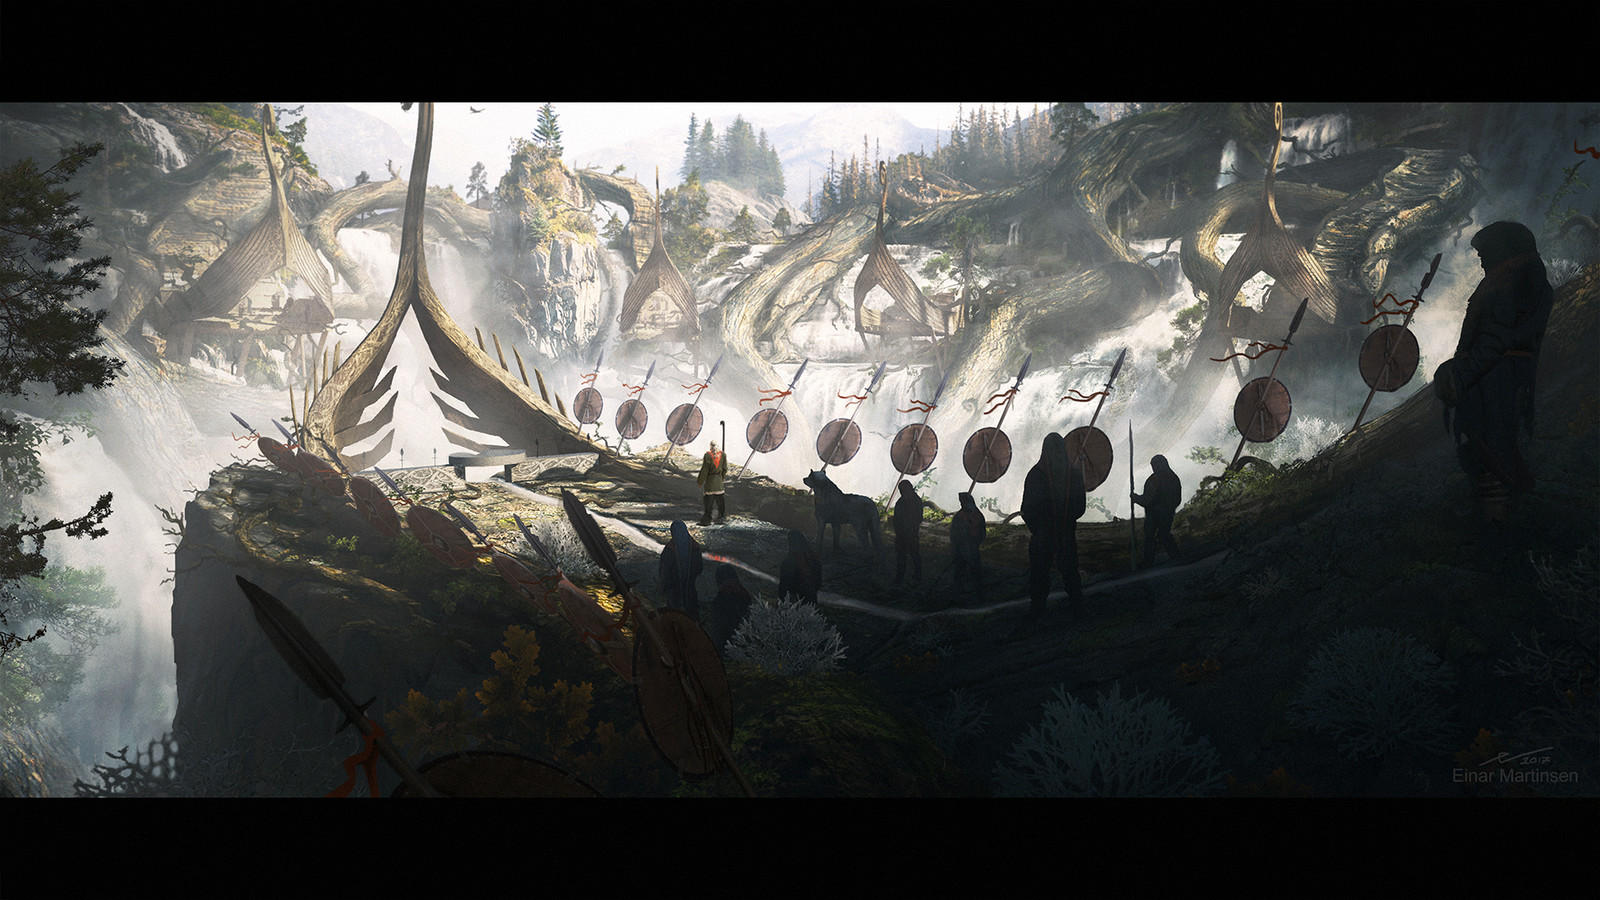 Production design course with Dylan Cole - Artwork by Einar Martinsen - Sacred place, shot 02